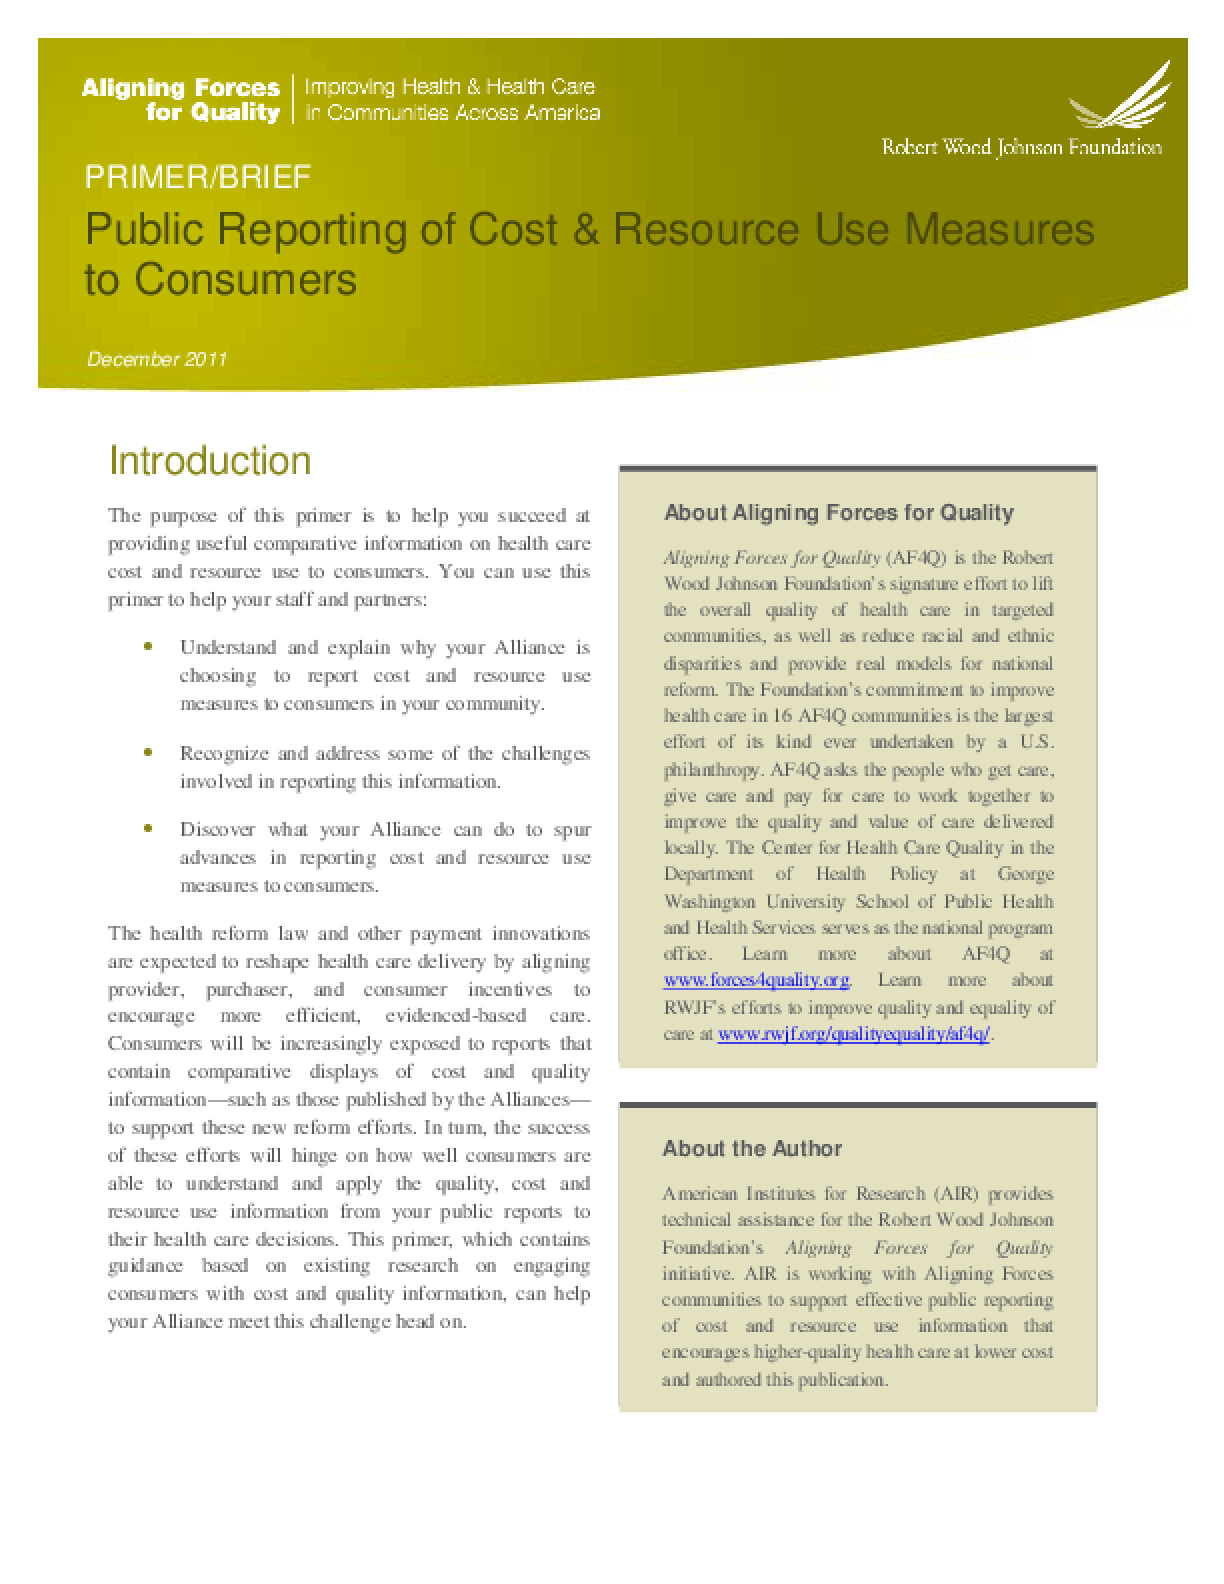 Public Reporting of Cost and Resource Use Measures to Consumers